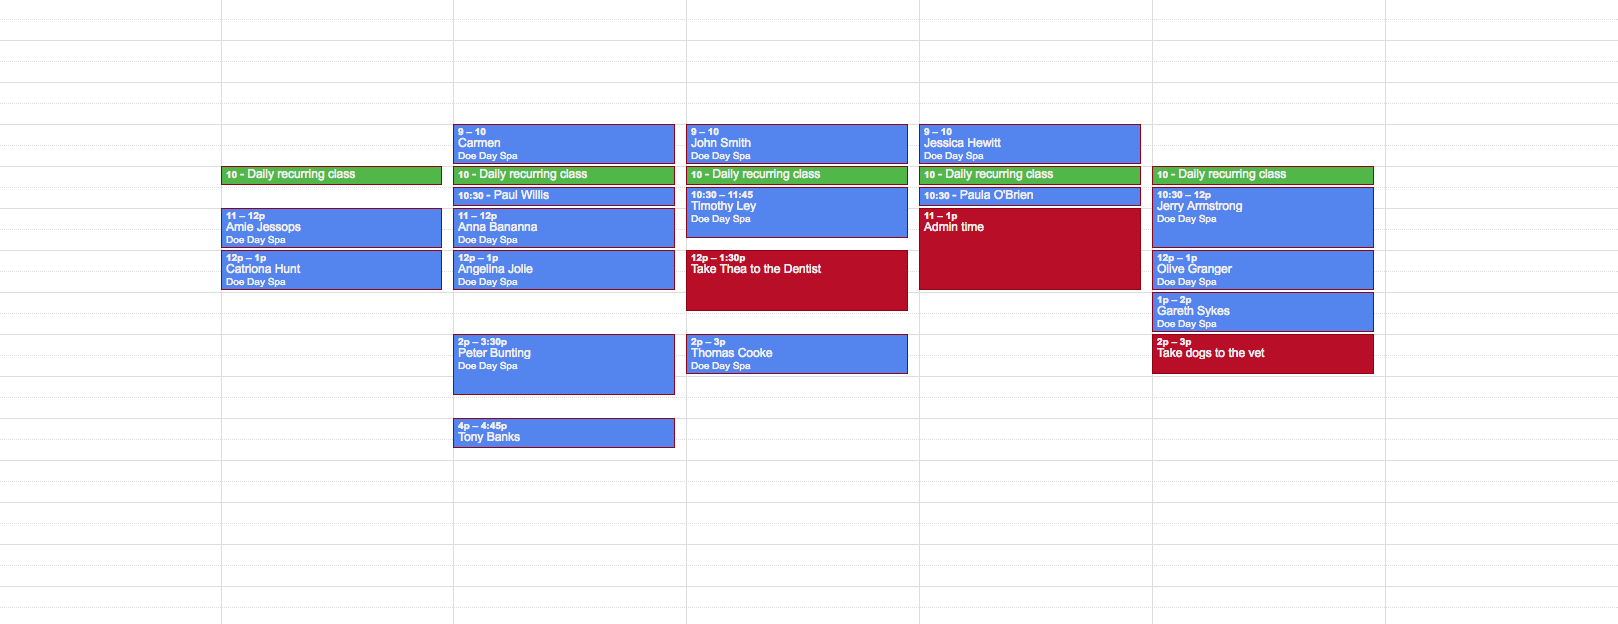 Using The Google Calendar Two Way Sync Timely Help Docs